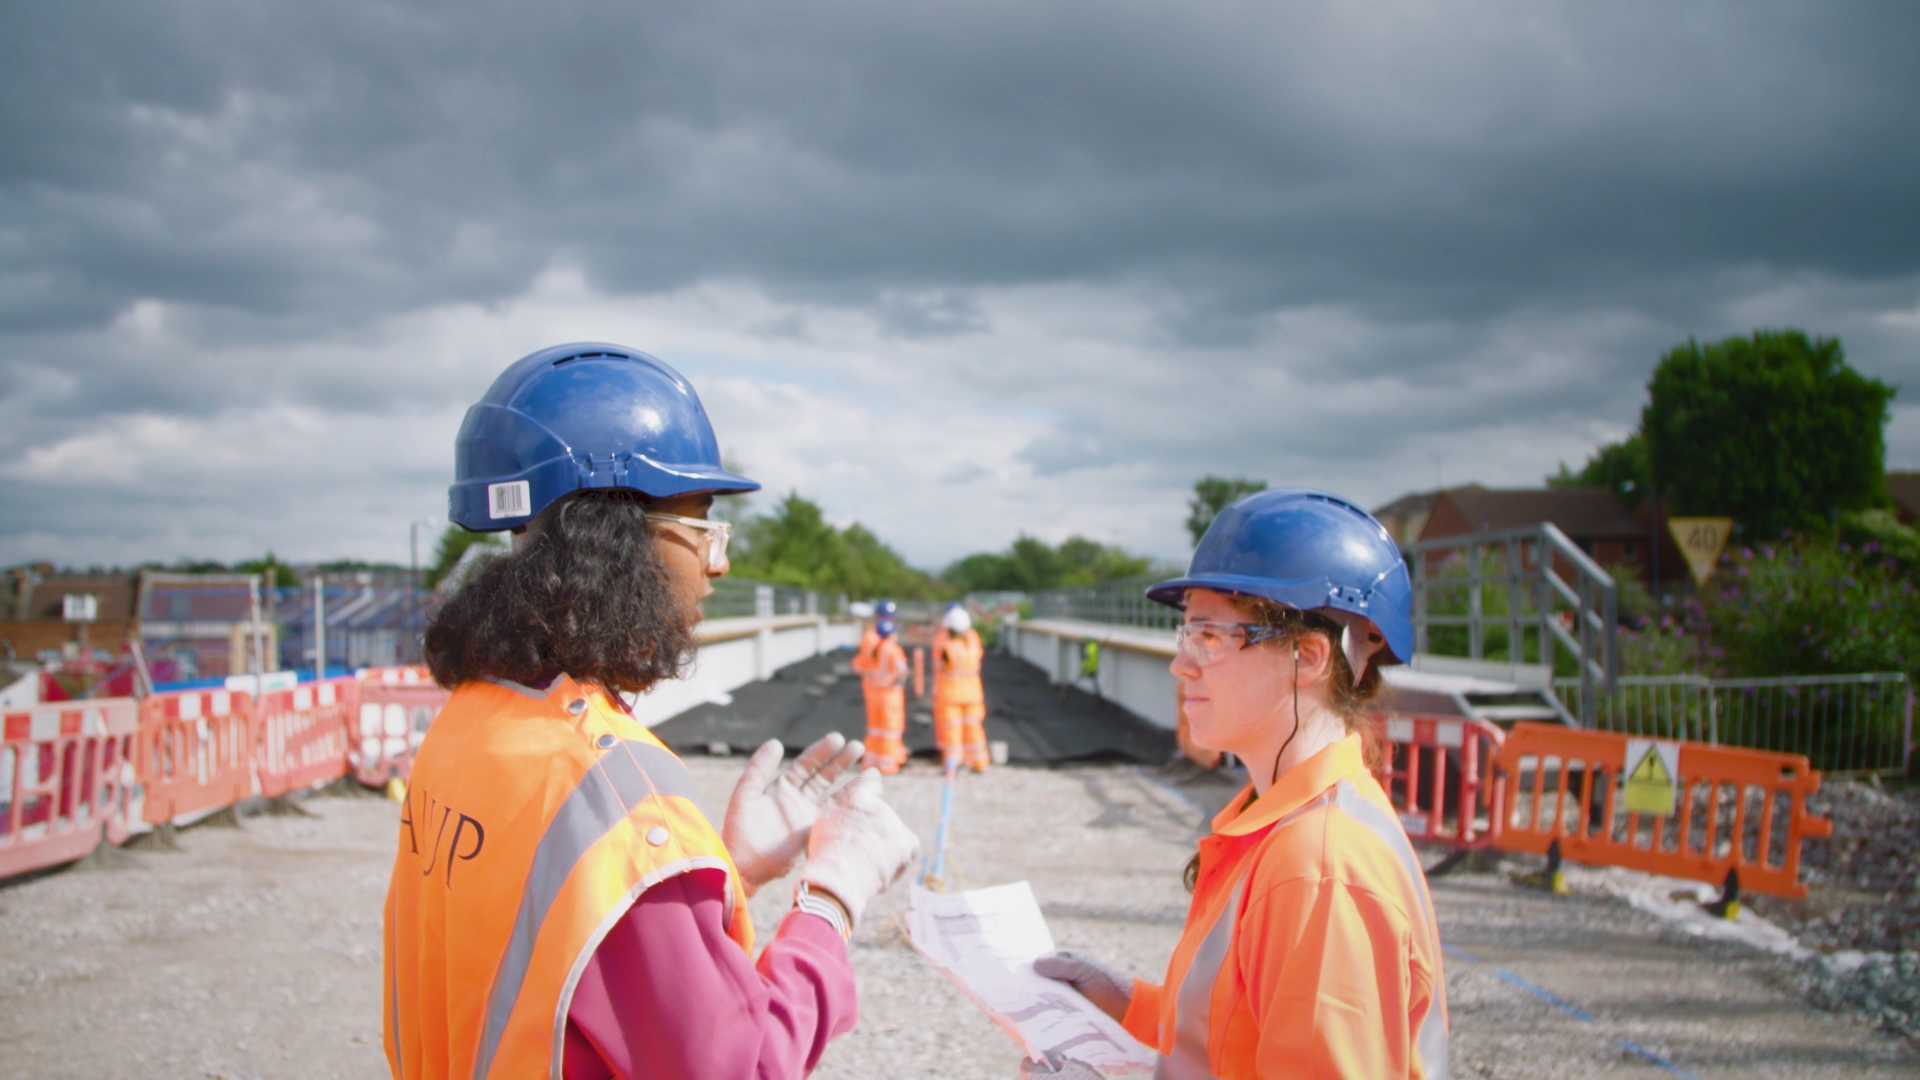 Civil Engineering student Heba talks with her colleague on site at a bridge during her placement year at Arup